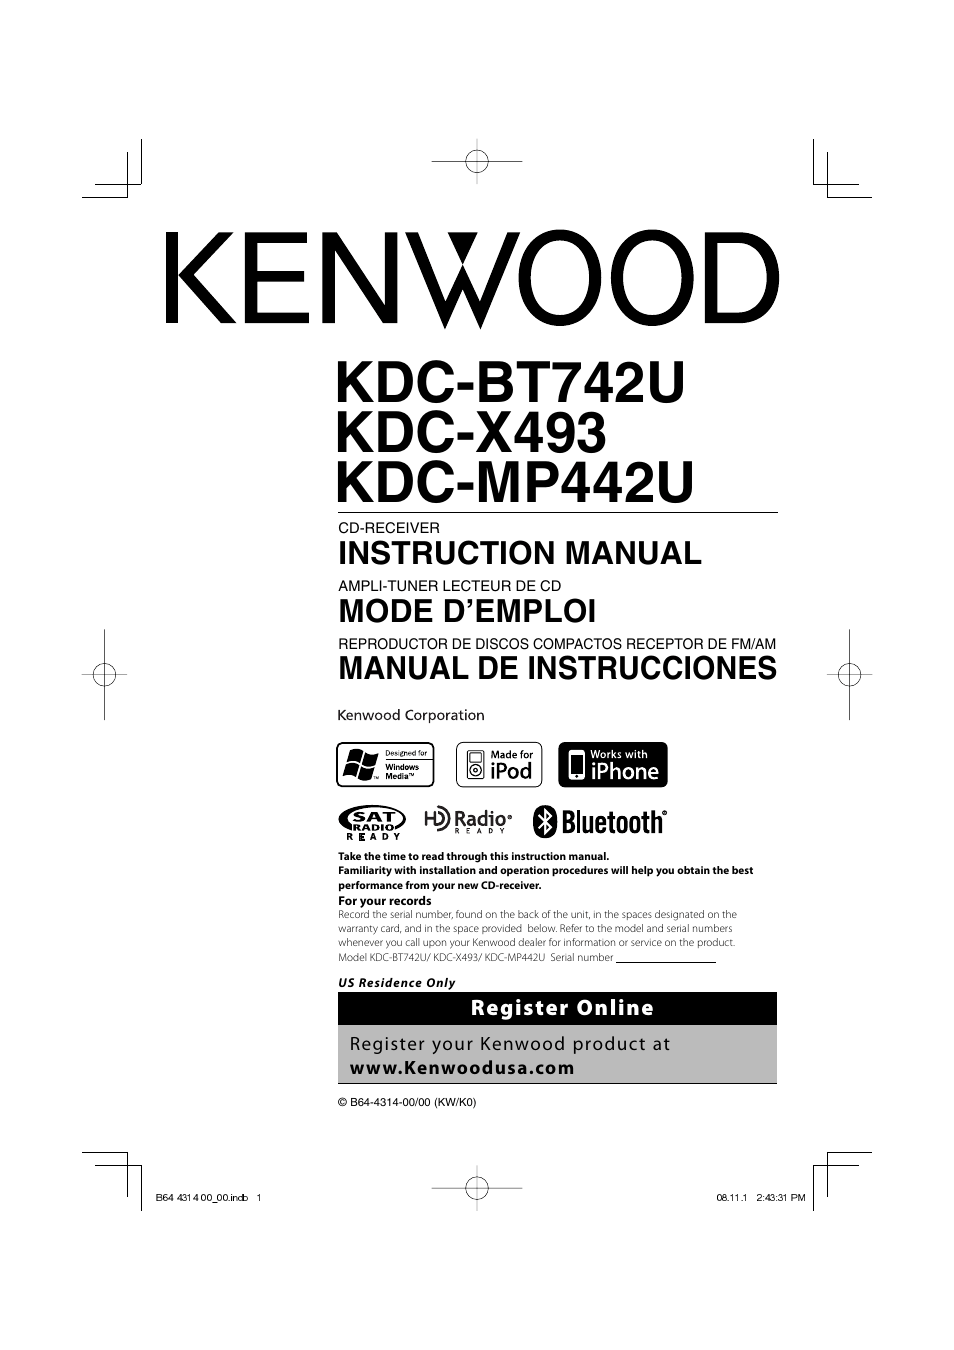 FE0A Kenwood Kdc Mp235 Wiring Diagram Manual | Wiring Resources on kenwood kdc 138 connector, kenwood cd receiver wire diagram, kenwood radio diagram, kenwood wiring harness diagram, kenwood radio kdc-152 wiring, kenwood stereo wiring, gm radio wiring harness diagram, kenwood home receiver diagram, kenwood speaker wiring diagram, kenwood kdc bt755hd wirining,